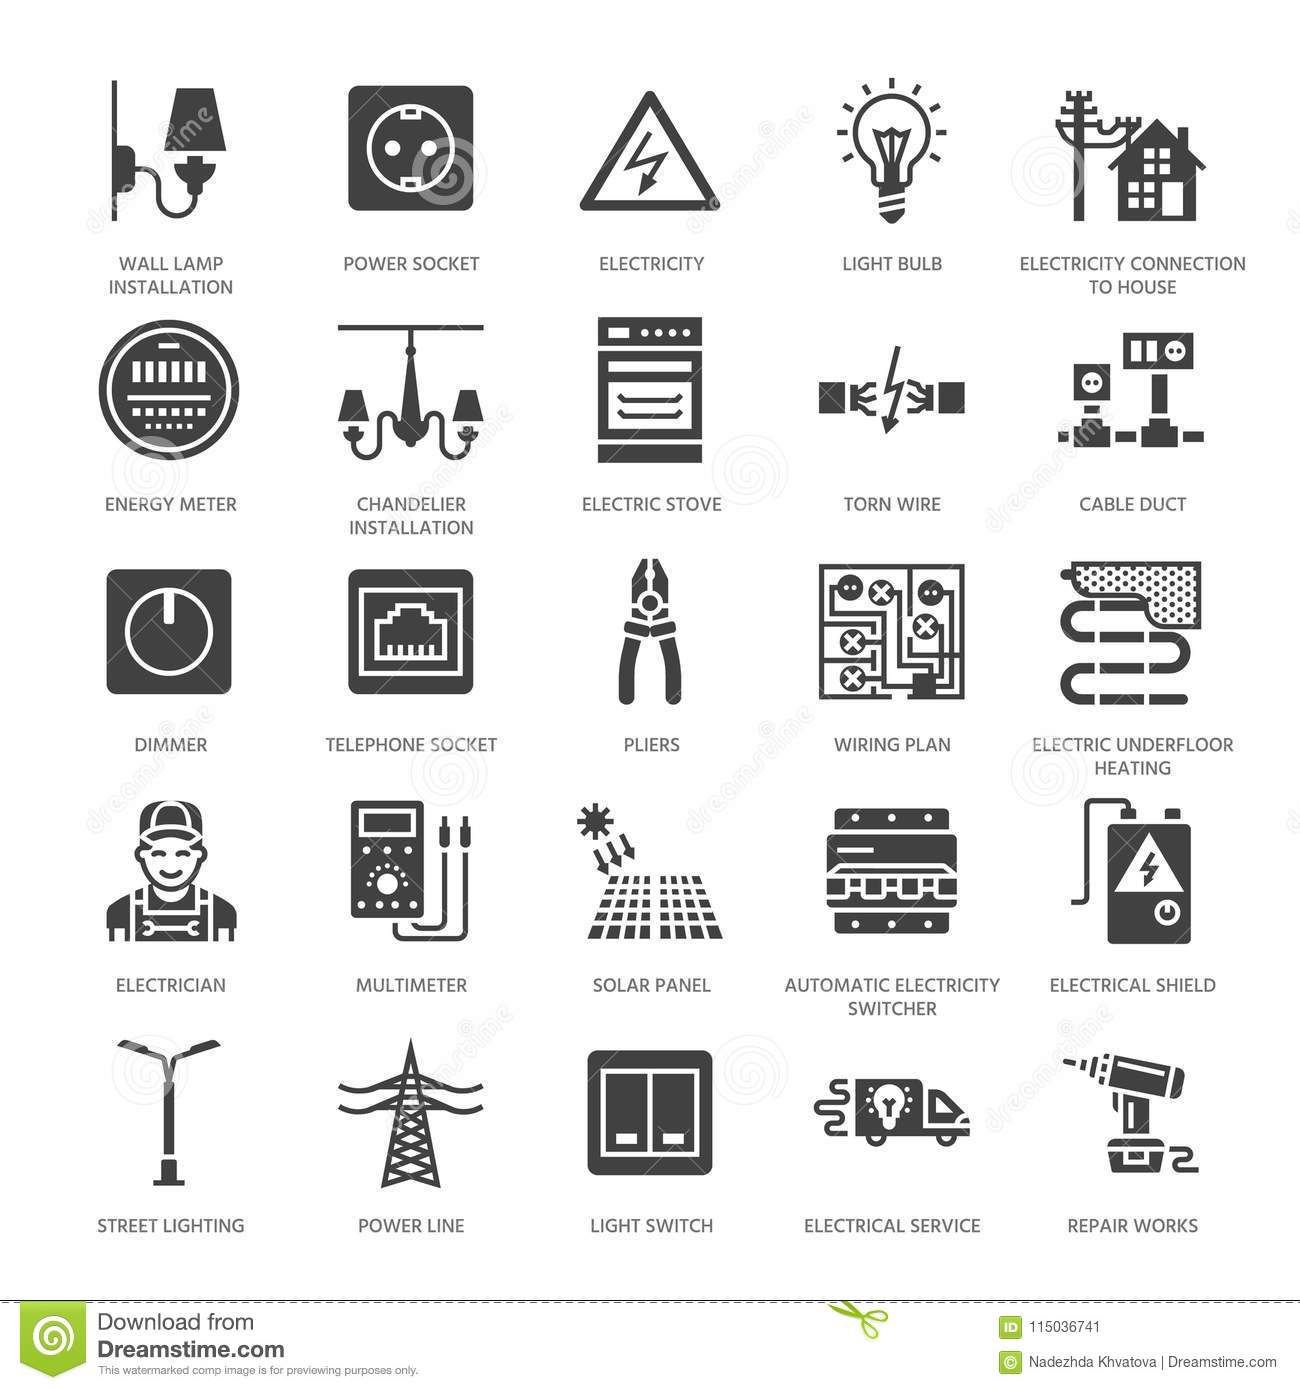 Electricity Engineering Vector Flat Glyph Icons Electrical Power Receptacle Wiring Equipment Socket Torn Wire